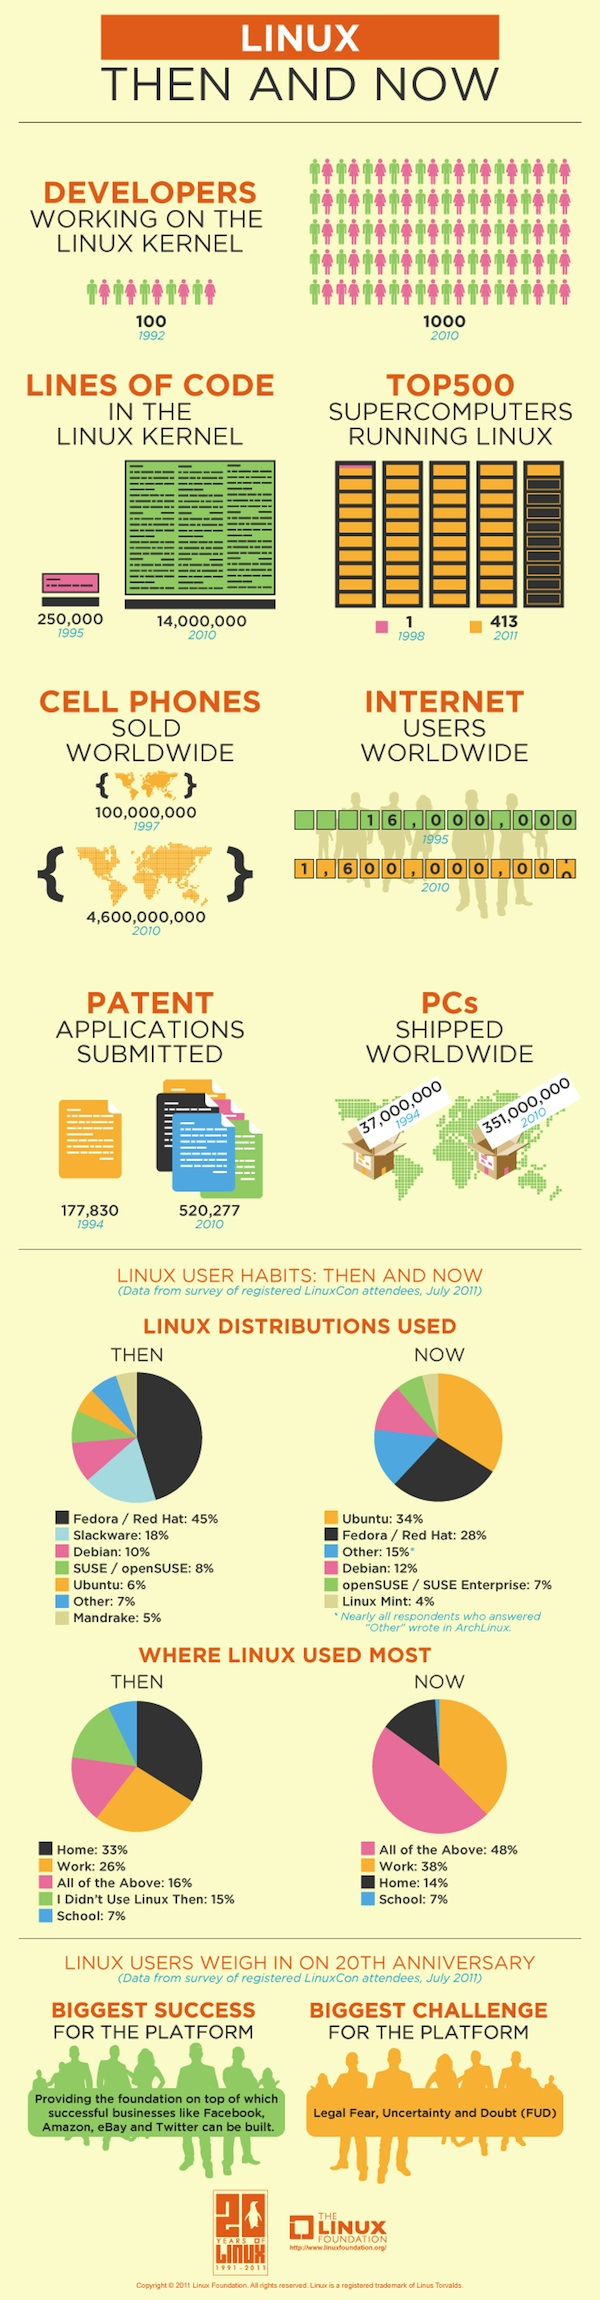 Linux - Then And Now Infographic